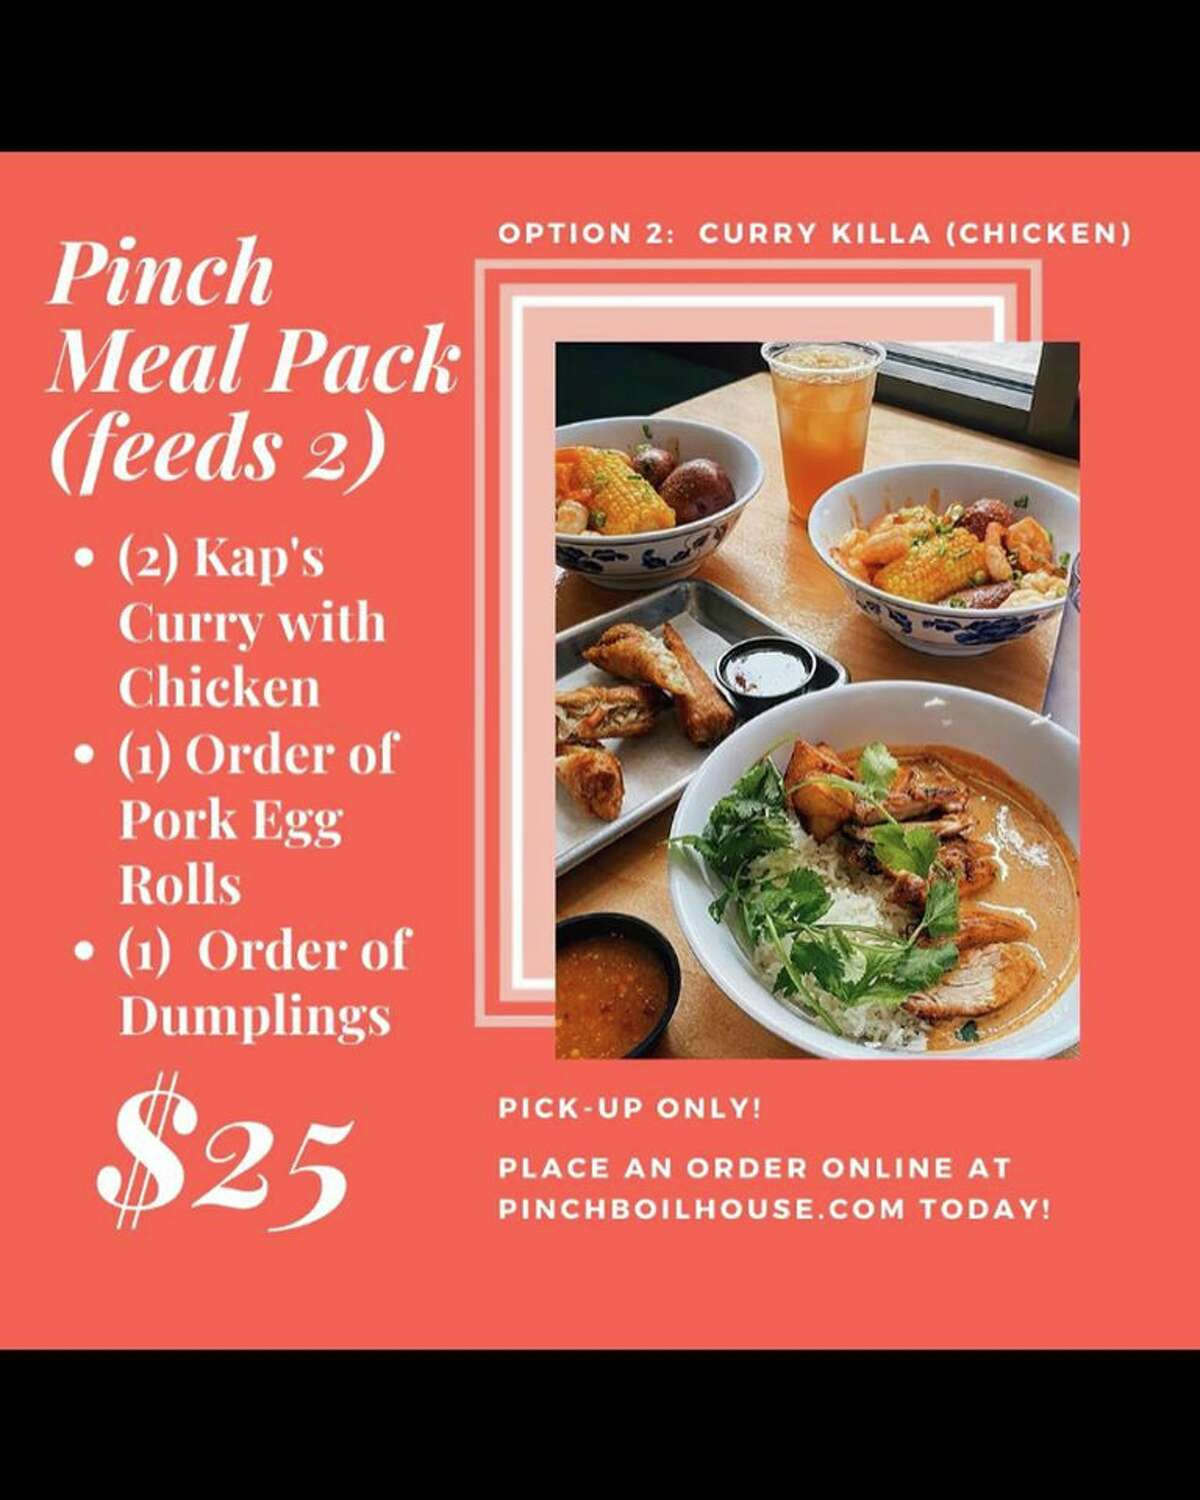 Like many San Antonio restaurants, Pinch Boil House decided to close their dining room and limit business to pick-up or deliveries as the country follows social distancing to prevent the spread of COVID-19. The restaurant has three meal packs available and each option comes with a free roll of toilet paper.